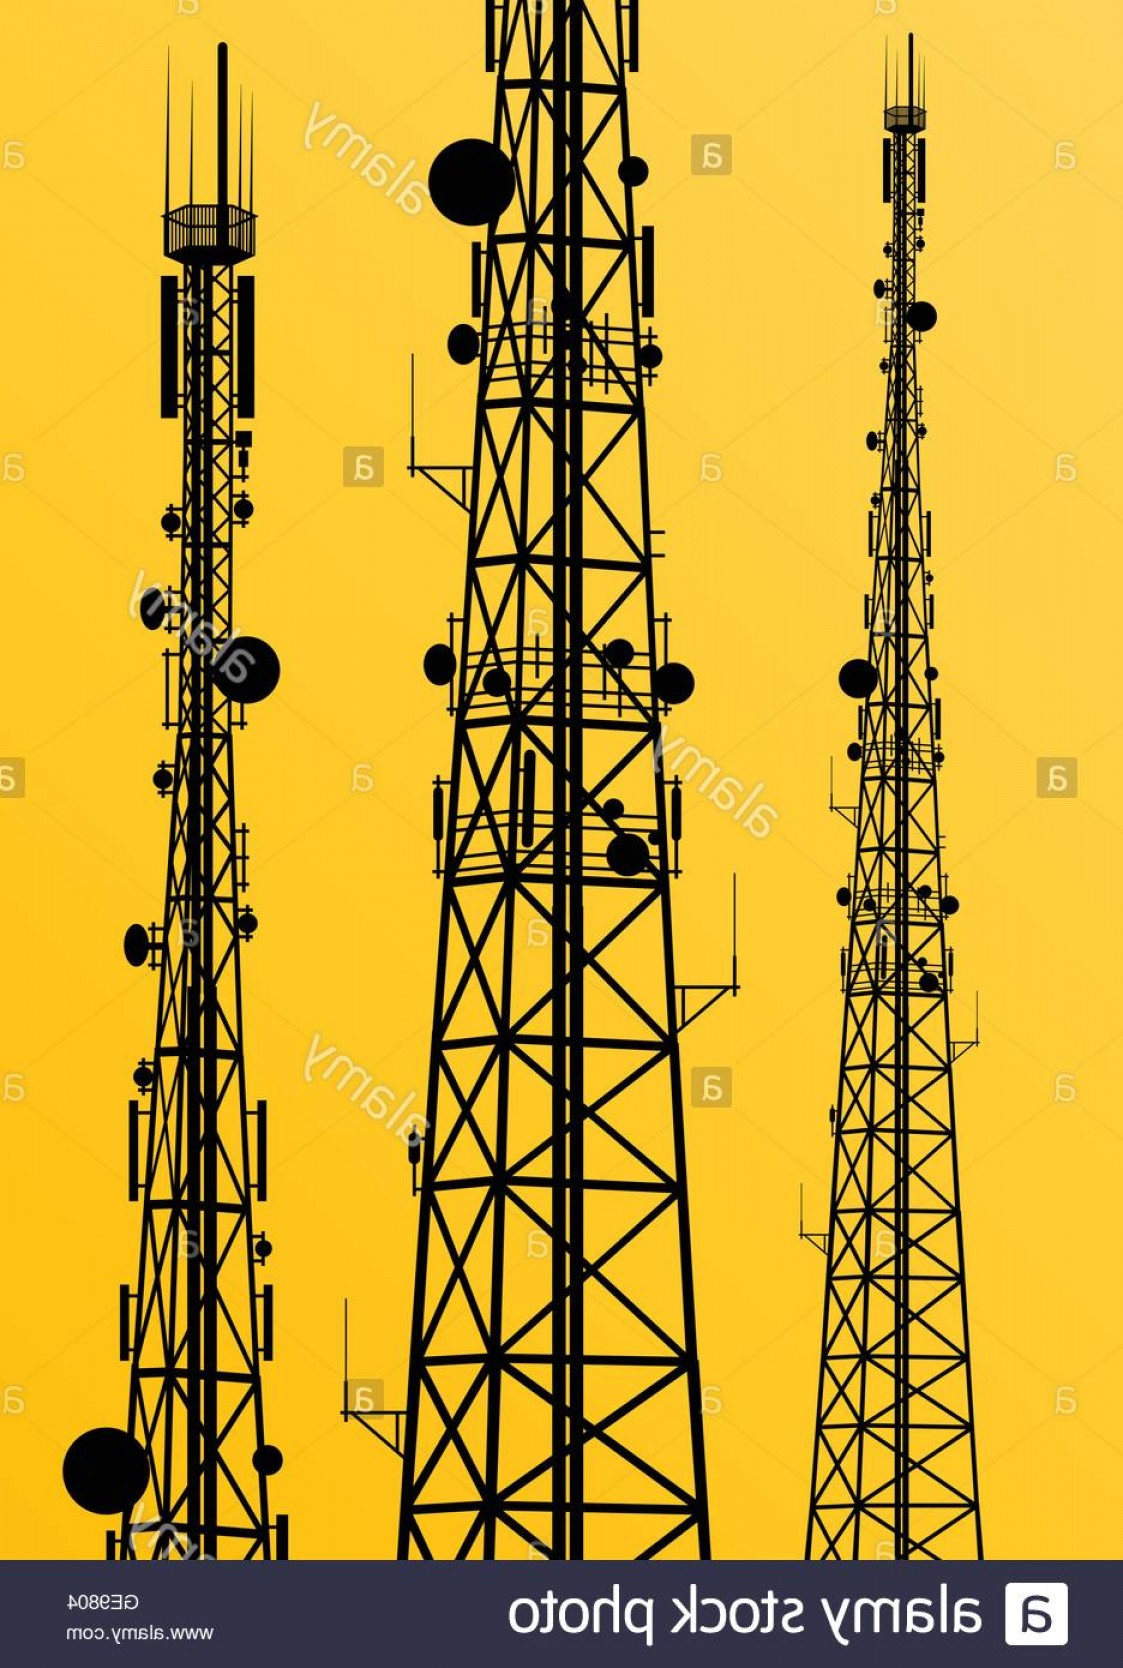 Vector Phone Tower: Stock Photo Communication Transmission Tower Radio Signal Phone Antenna Vector